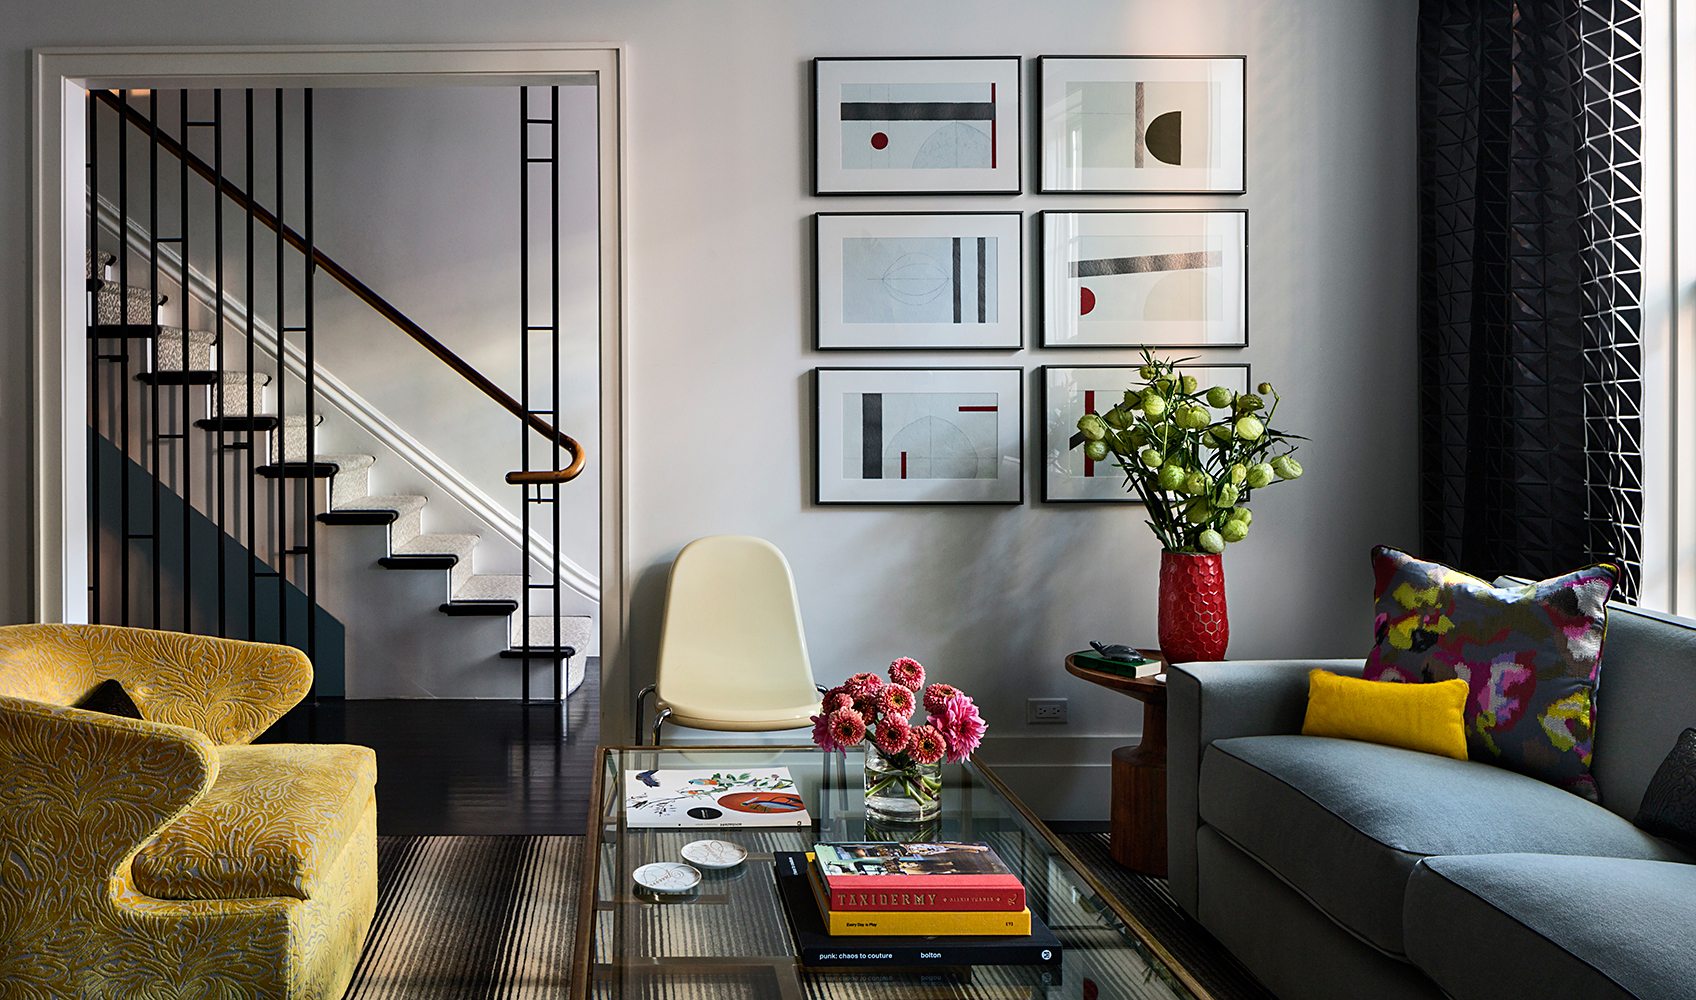 The best gray paints, recommended by experts